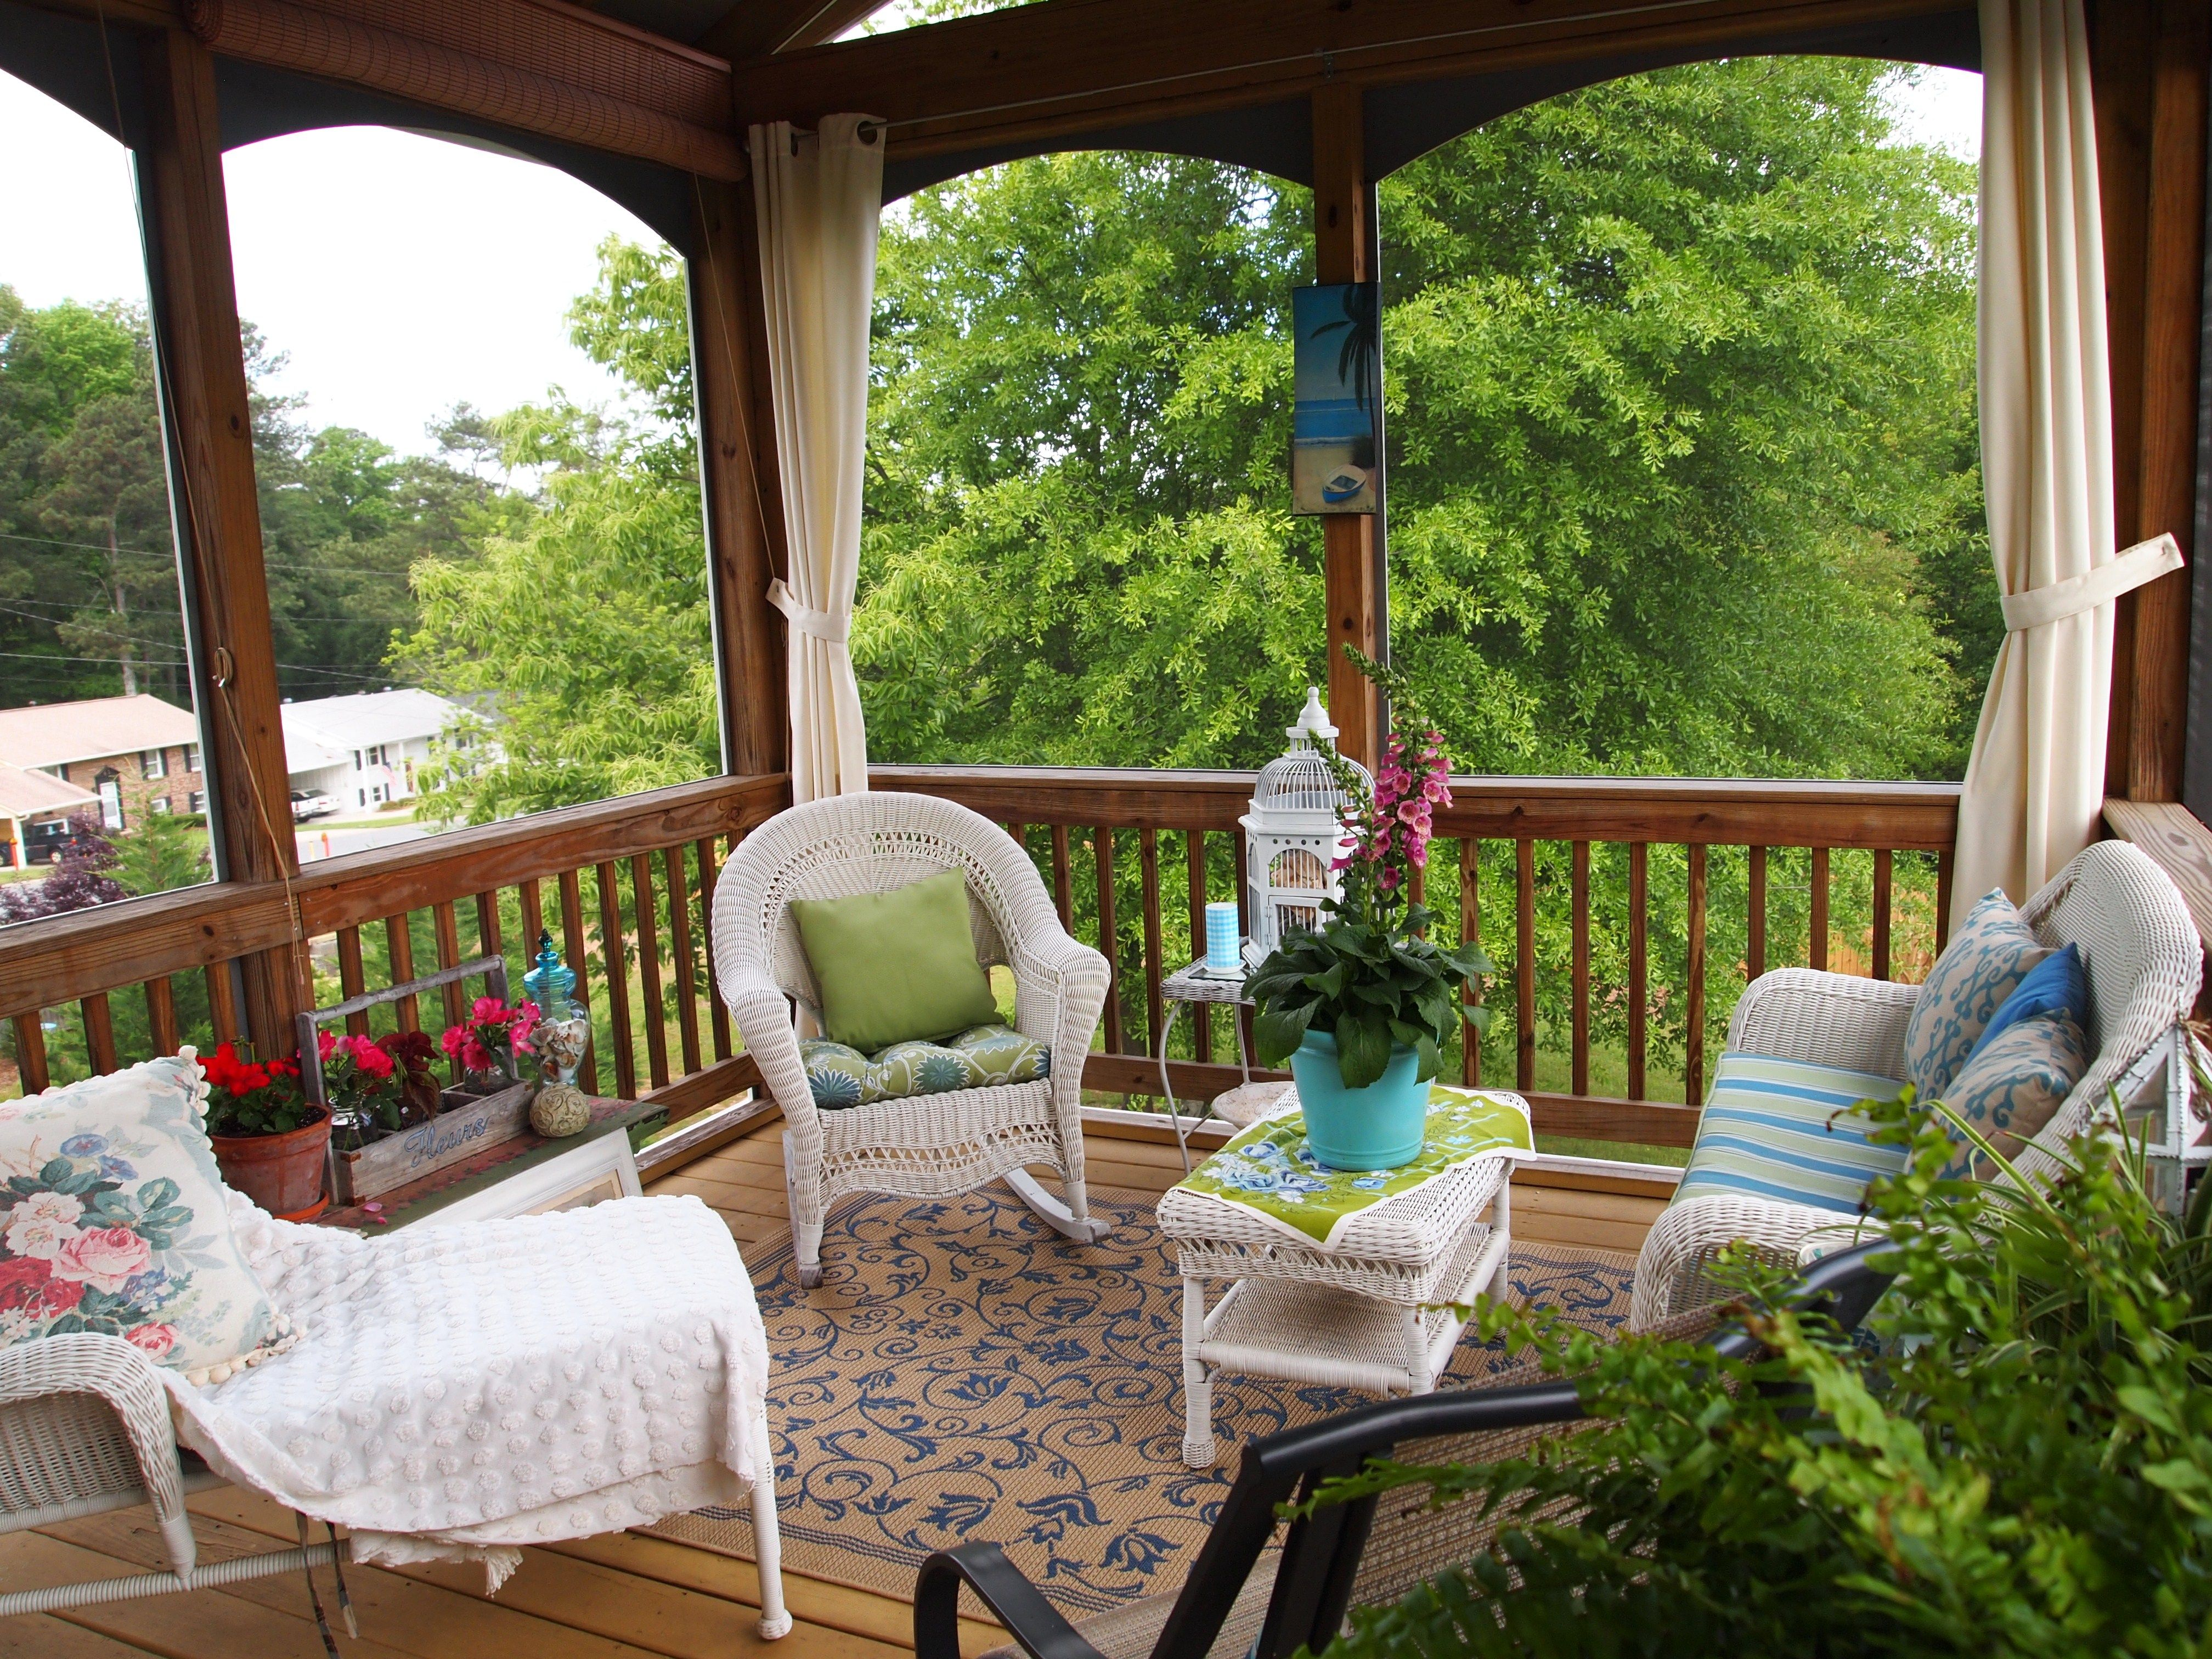 1000+ Images About Patio Ideas On Pinterest | Small Patio, Patio